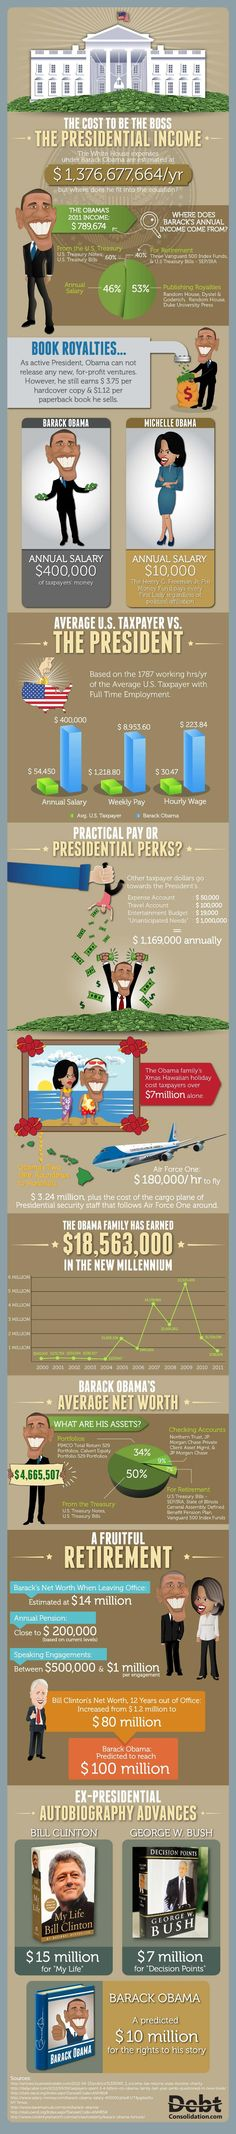 How Obama Makes His Money